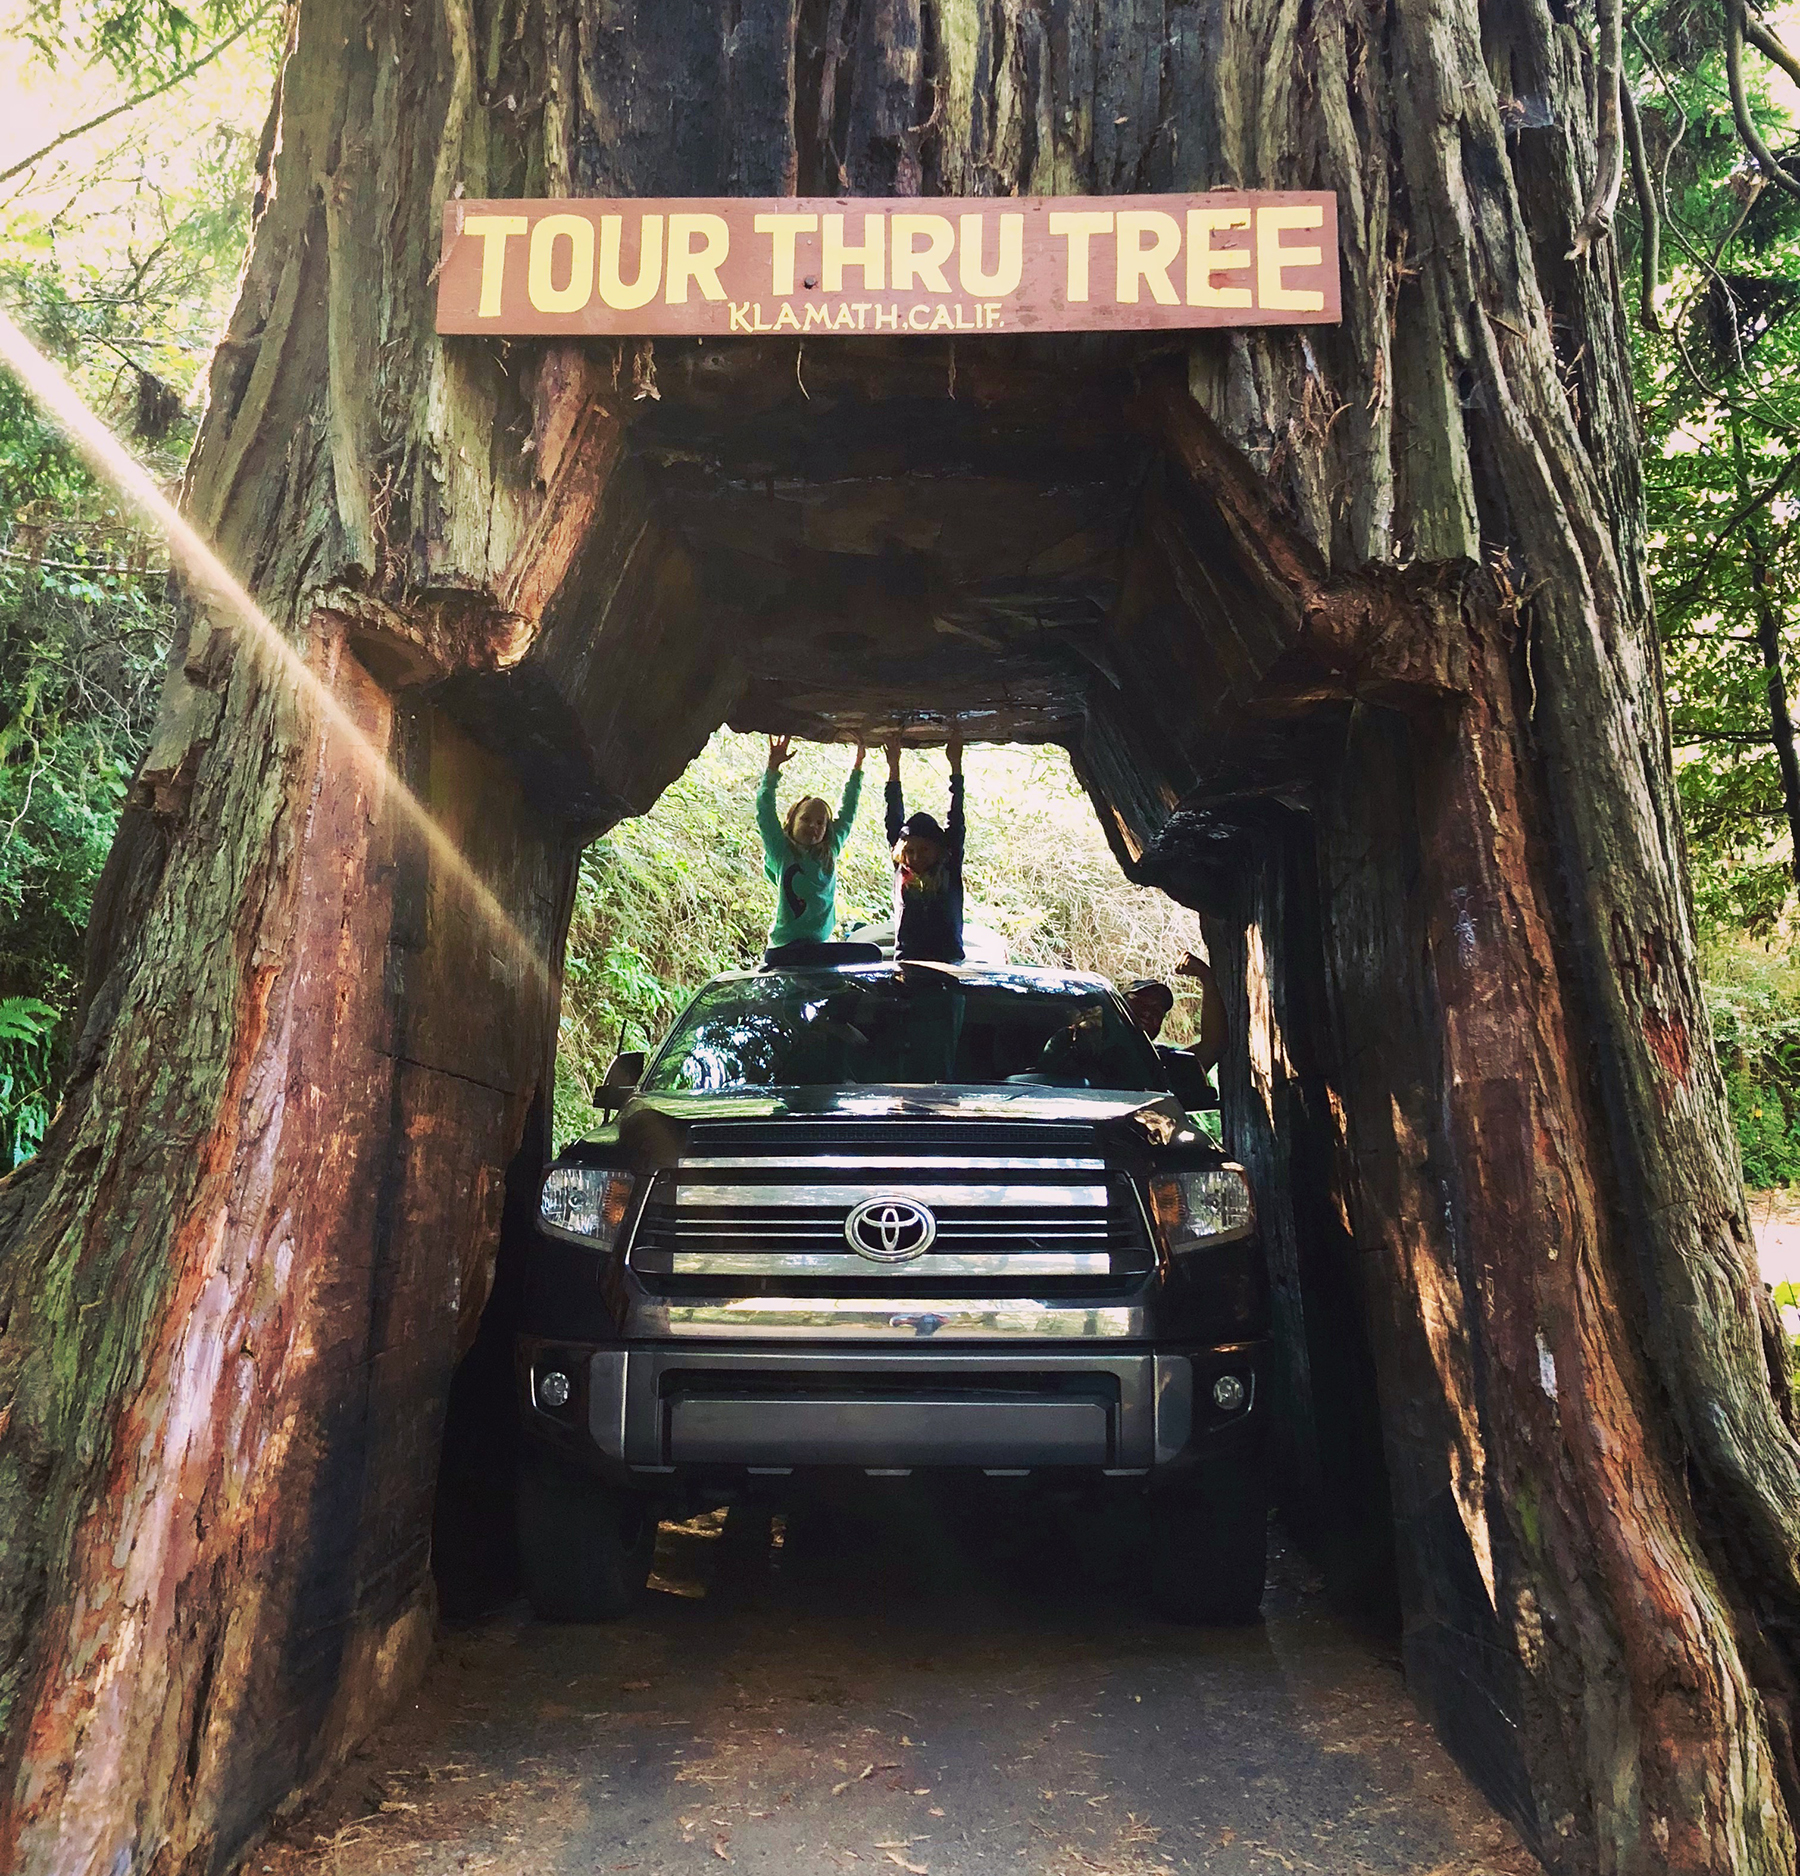 Driving a truck through a hole in a tree.